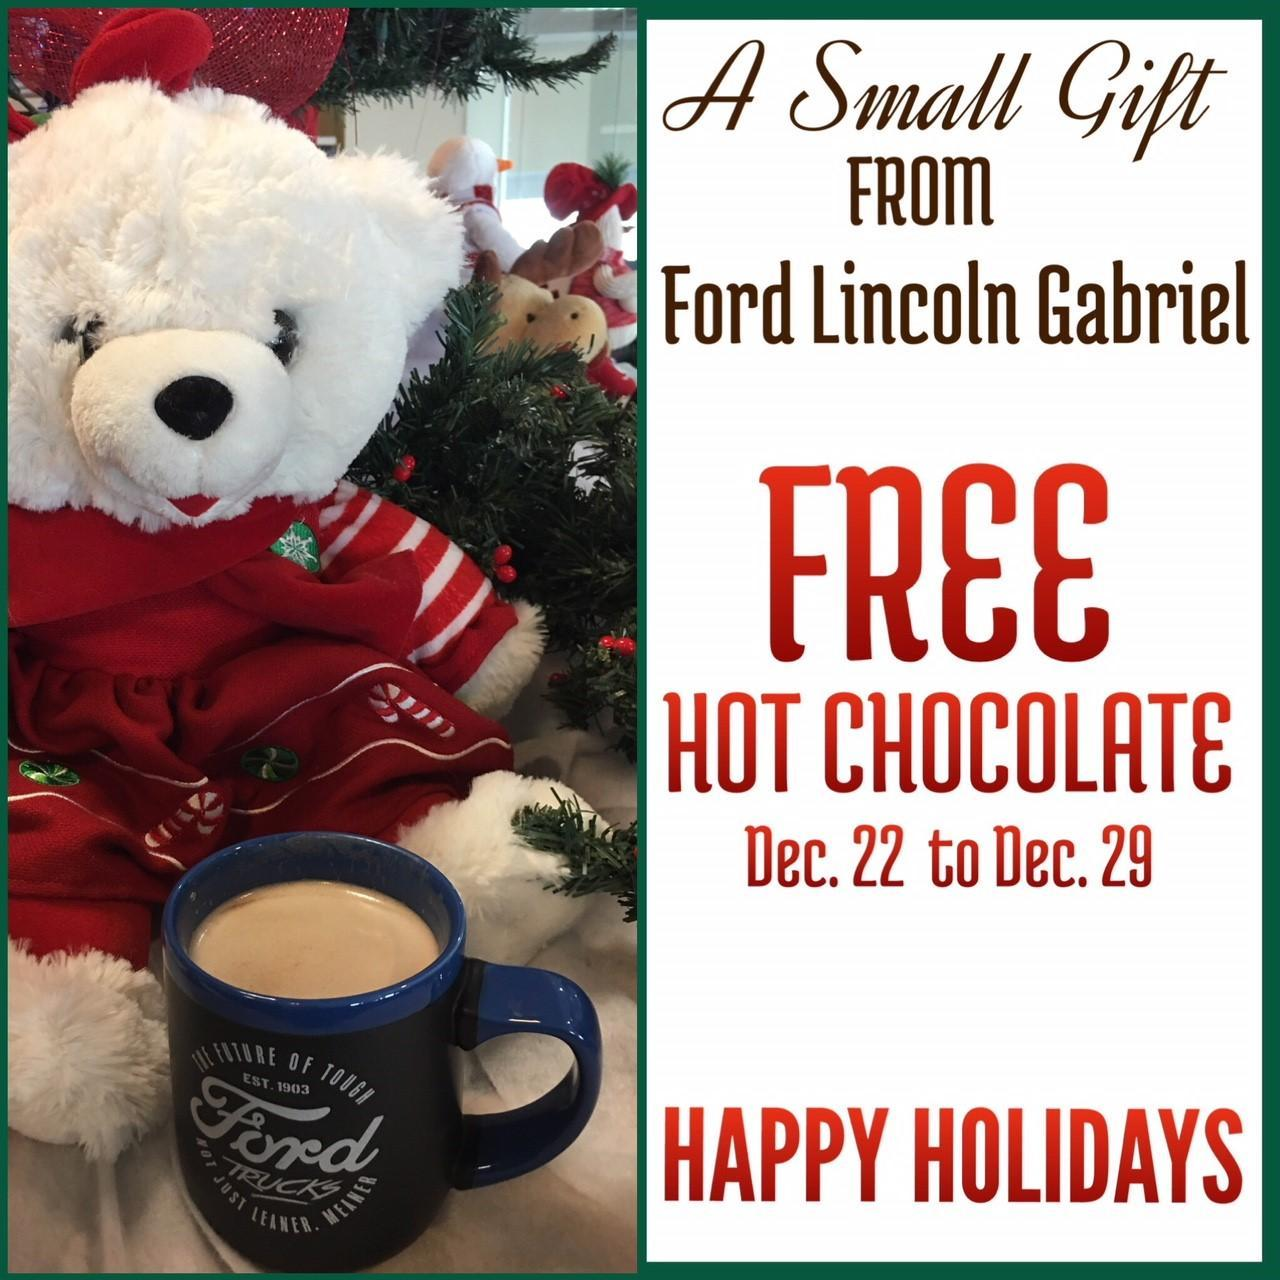 News during the holiday season december 22 to december 29 and during our opening hours ford lincoln gabriel invites friends and neighbors with their children malvernweather Gallery